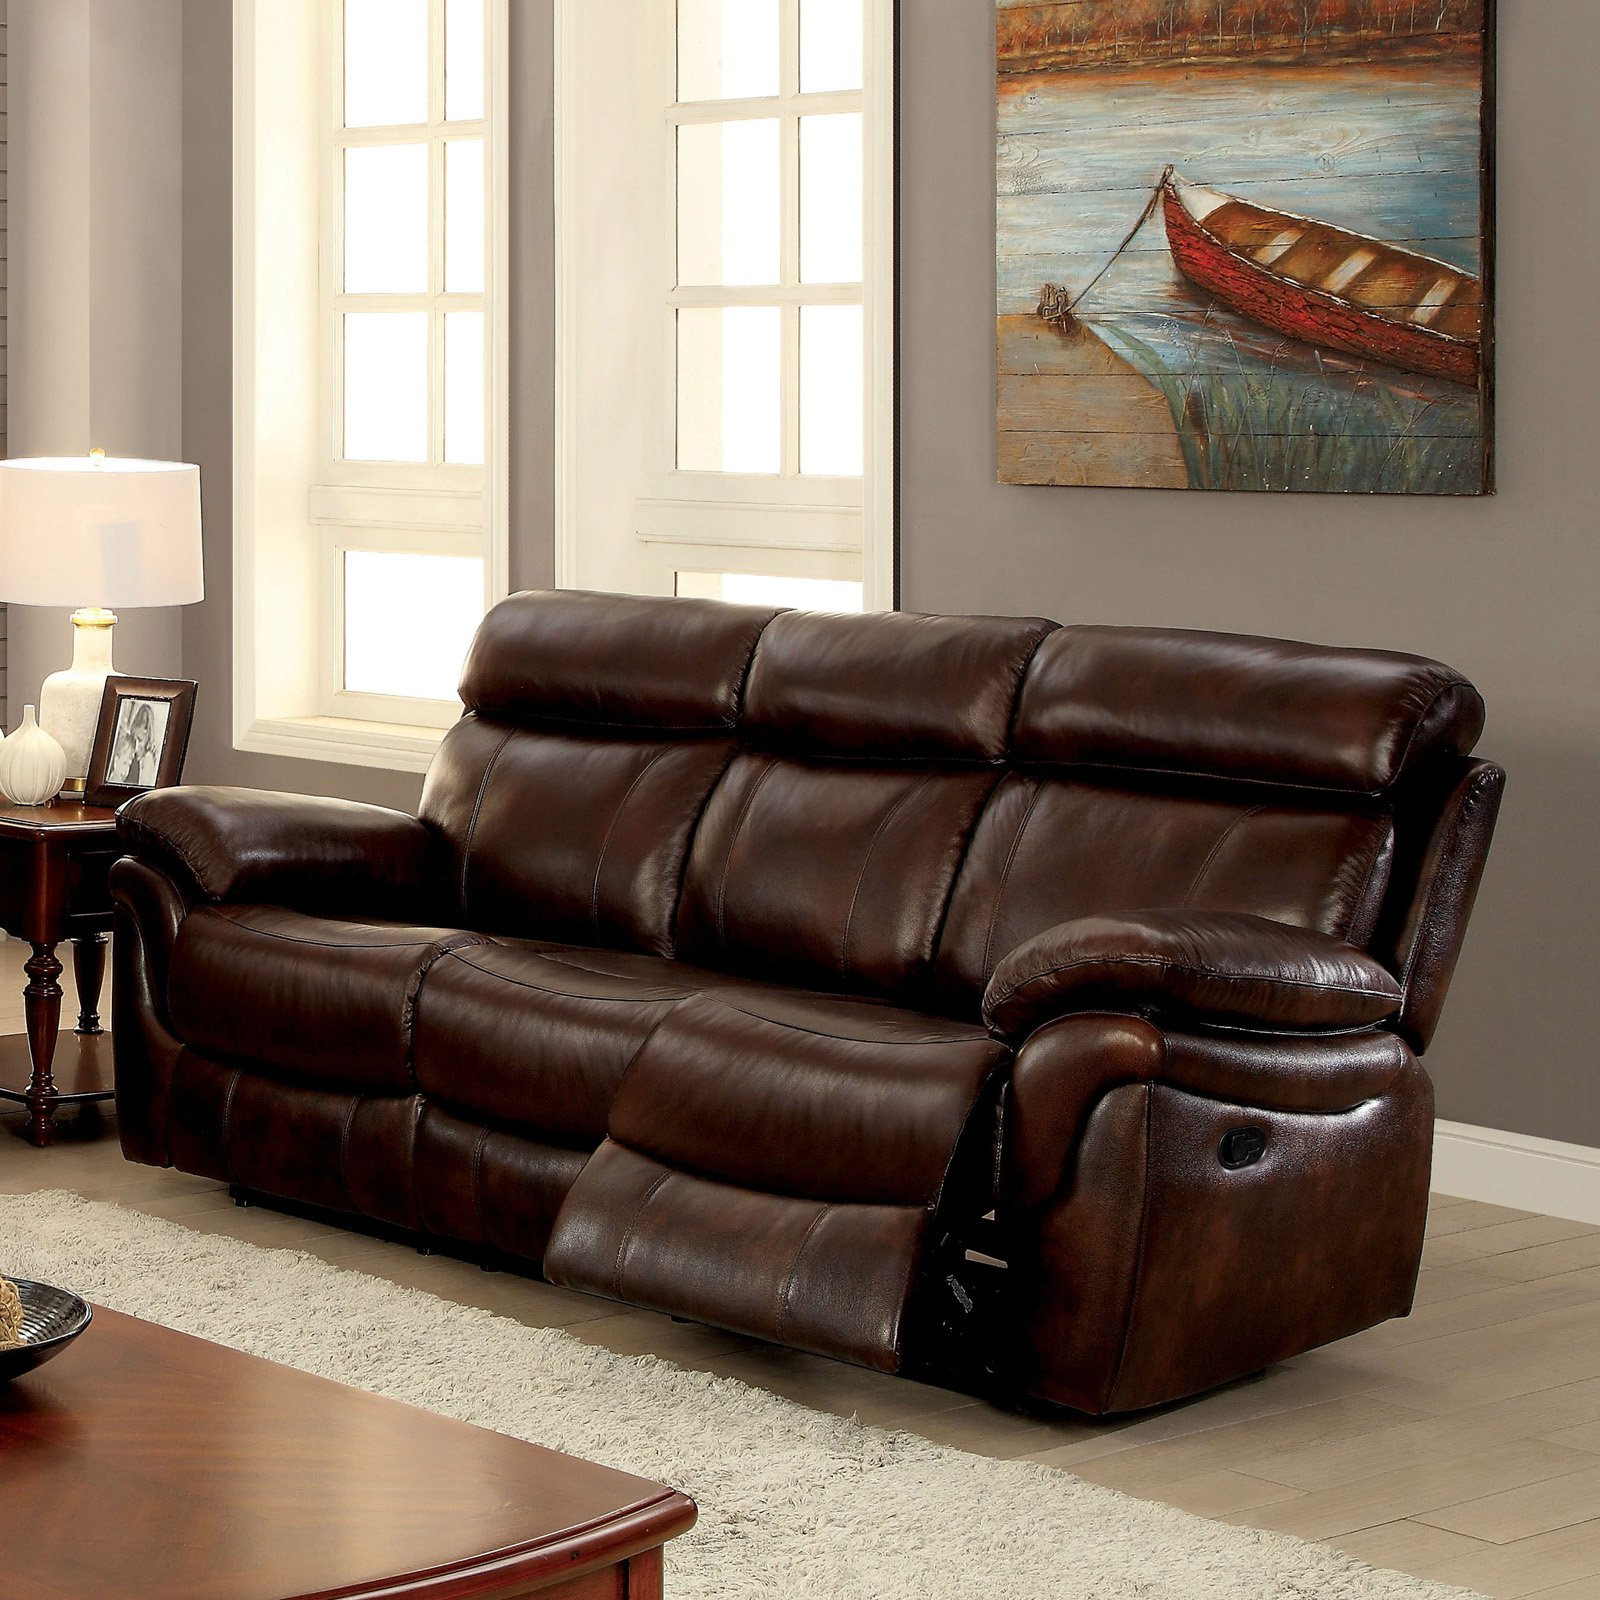 Cool Furniture Of America Benson Transitional Style Leatherette Bralicious Painted Fabric Chair Ideas Braliciousco